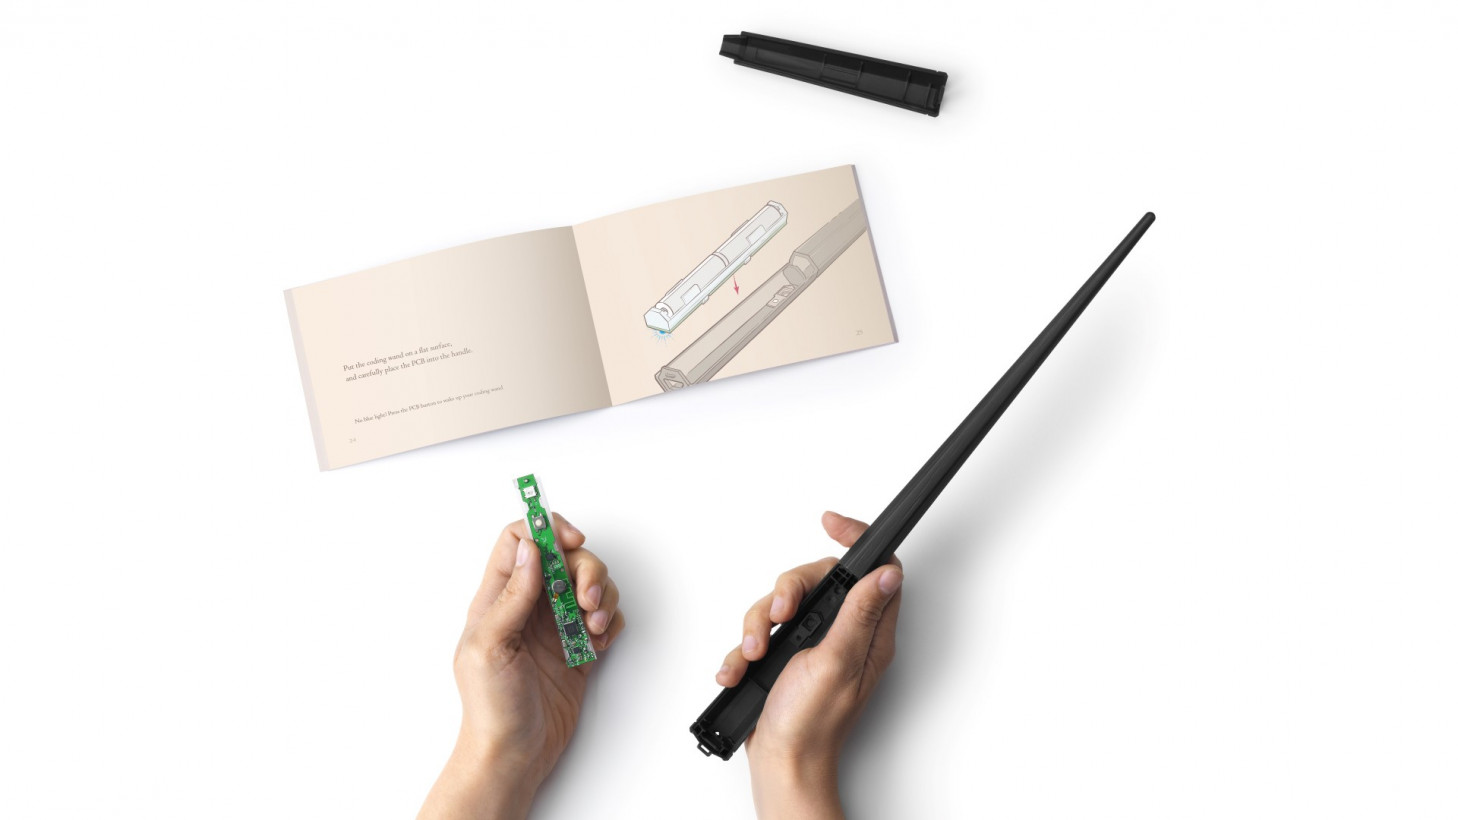 Magic Wand Harry This Magic Wand Teaches Stem Skills Through The World Of Harry Potter